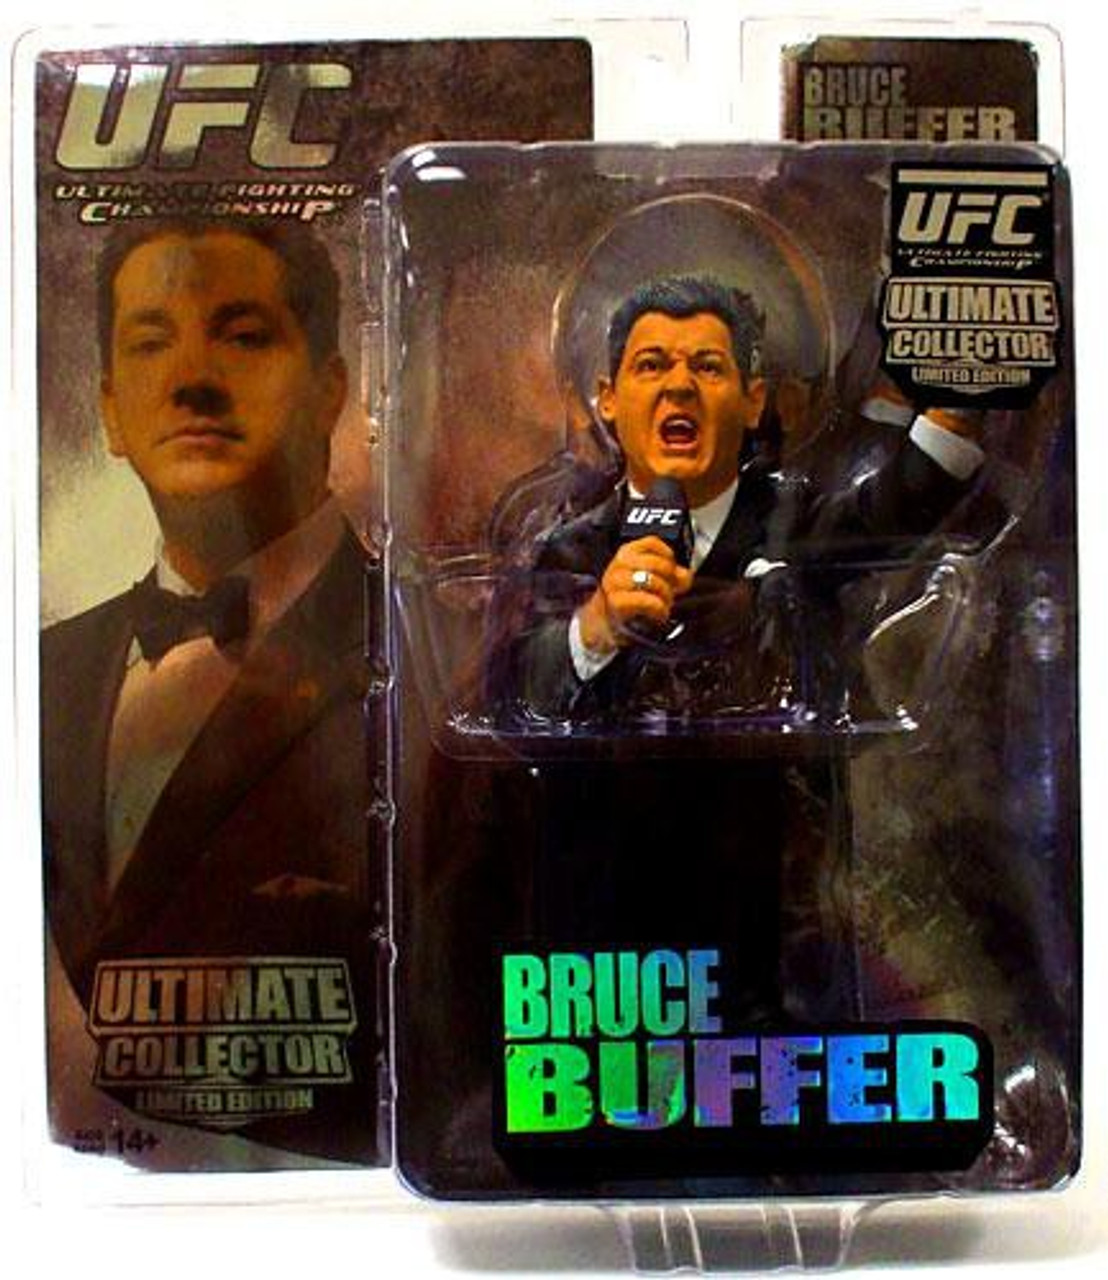 UFC Ultimate Collector Series 4 Bruce Buffer Action Figure [Limited Edition]